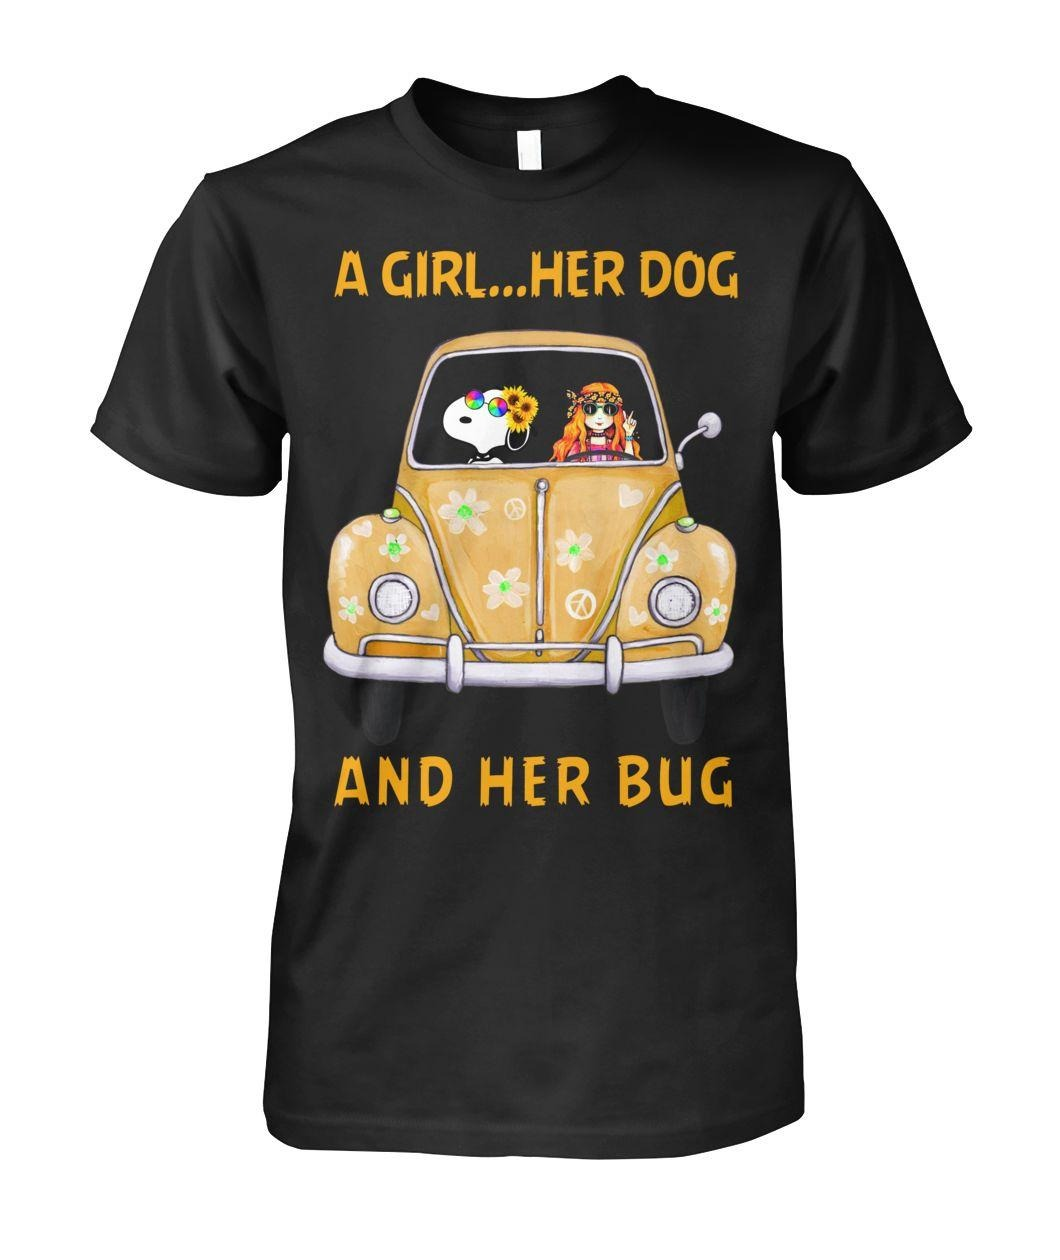 Snoopy a girl her dog and her bug shirt